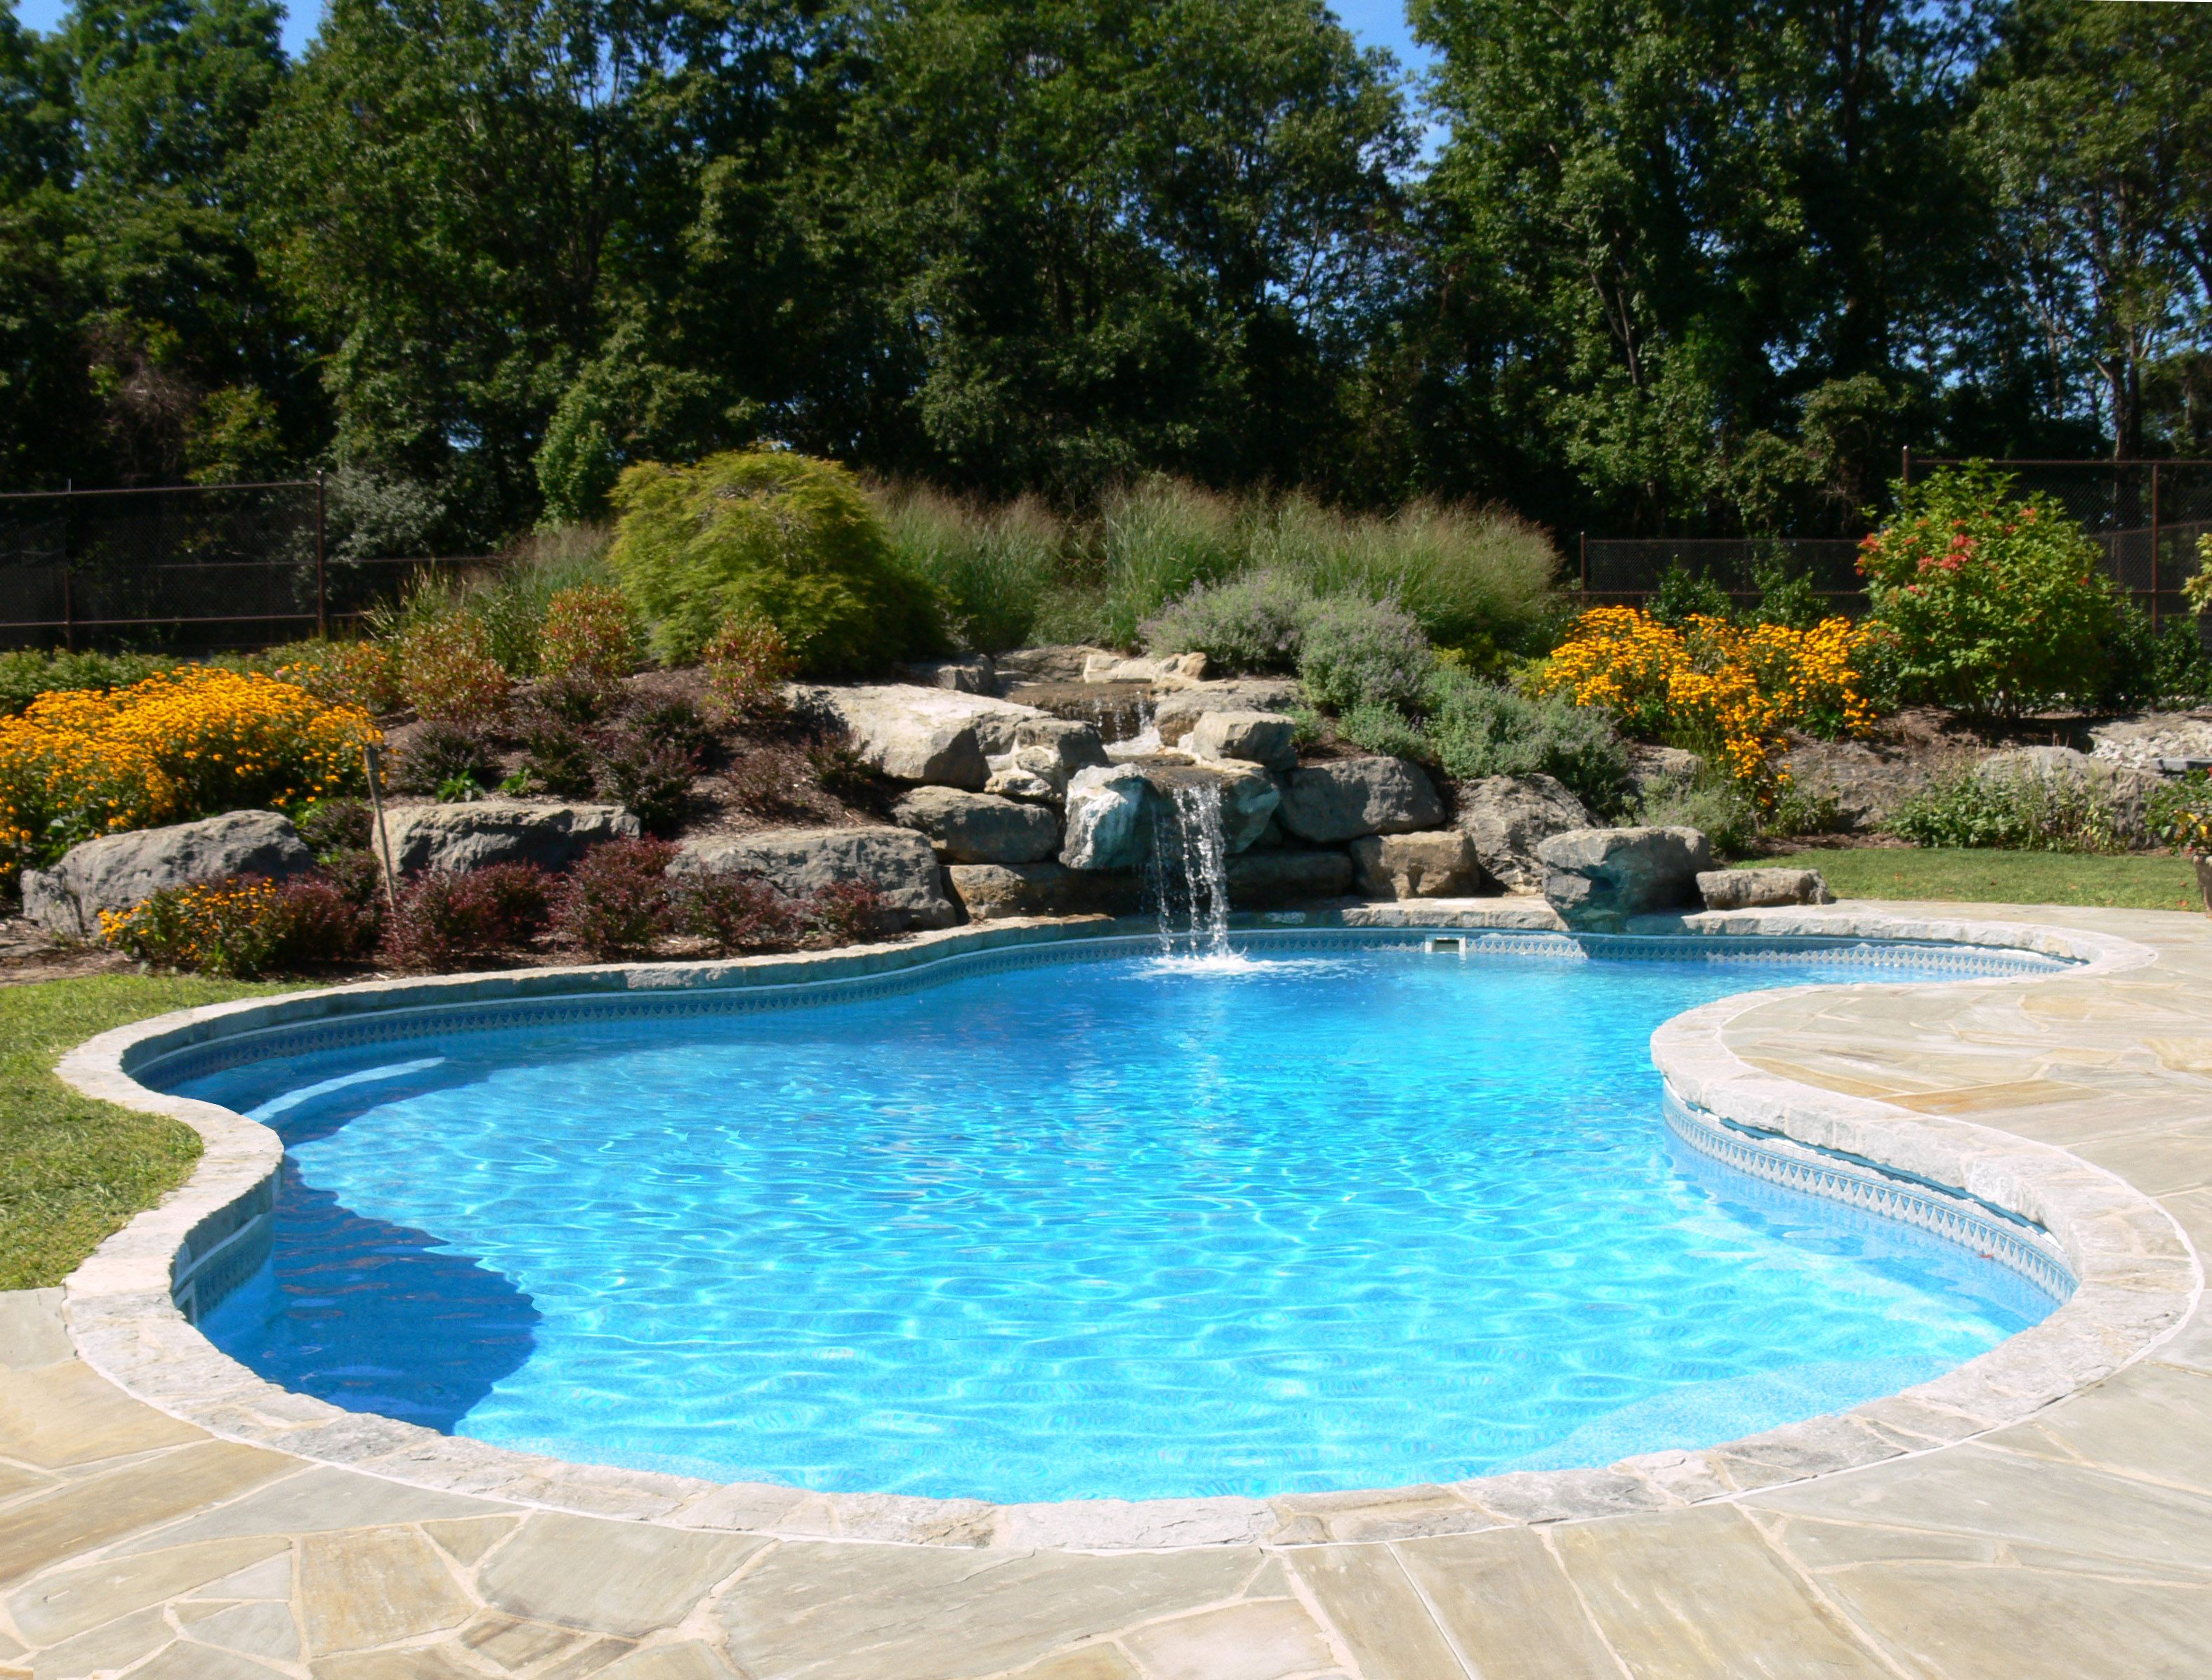 Lagoon Swimming Pool Kits Backyard pool landscaping